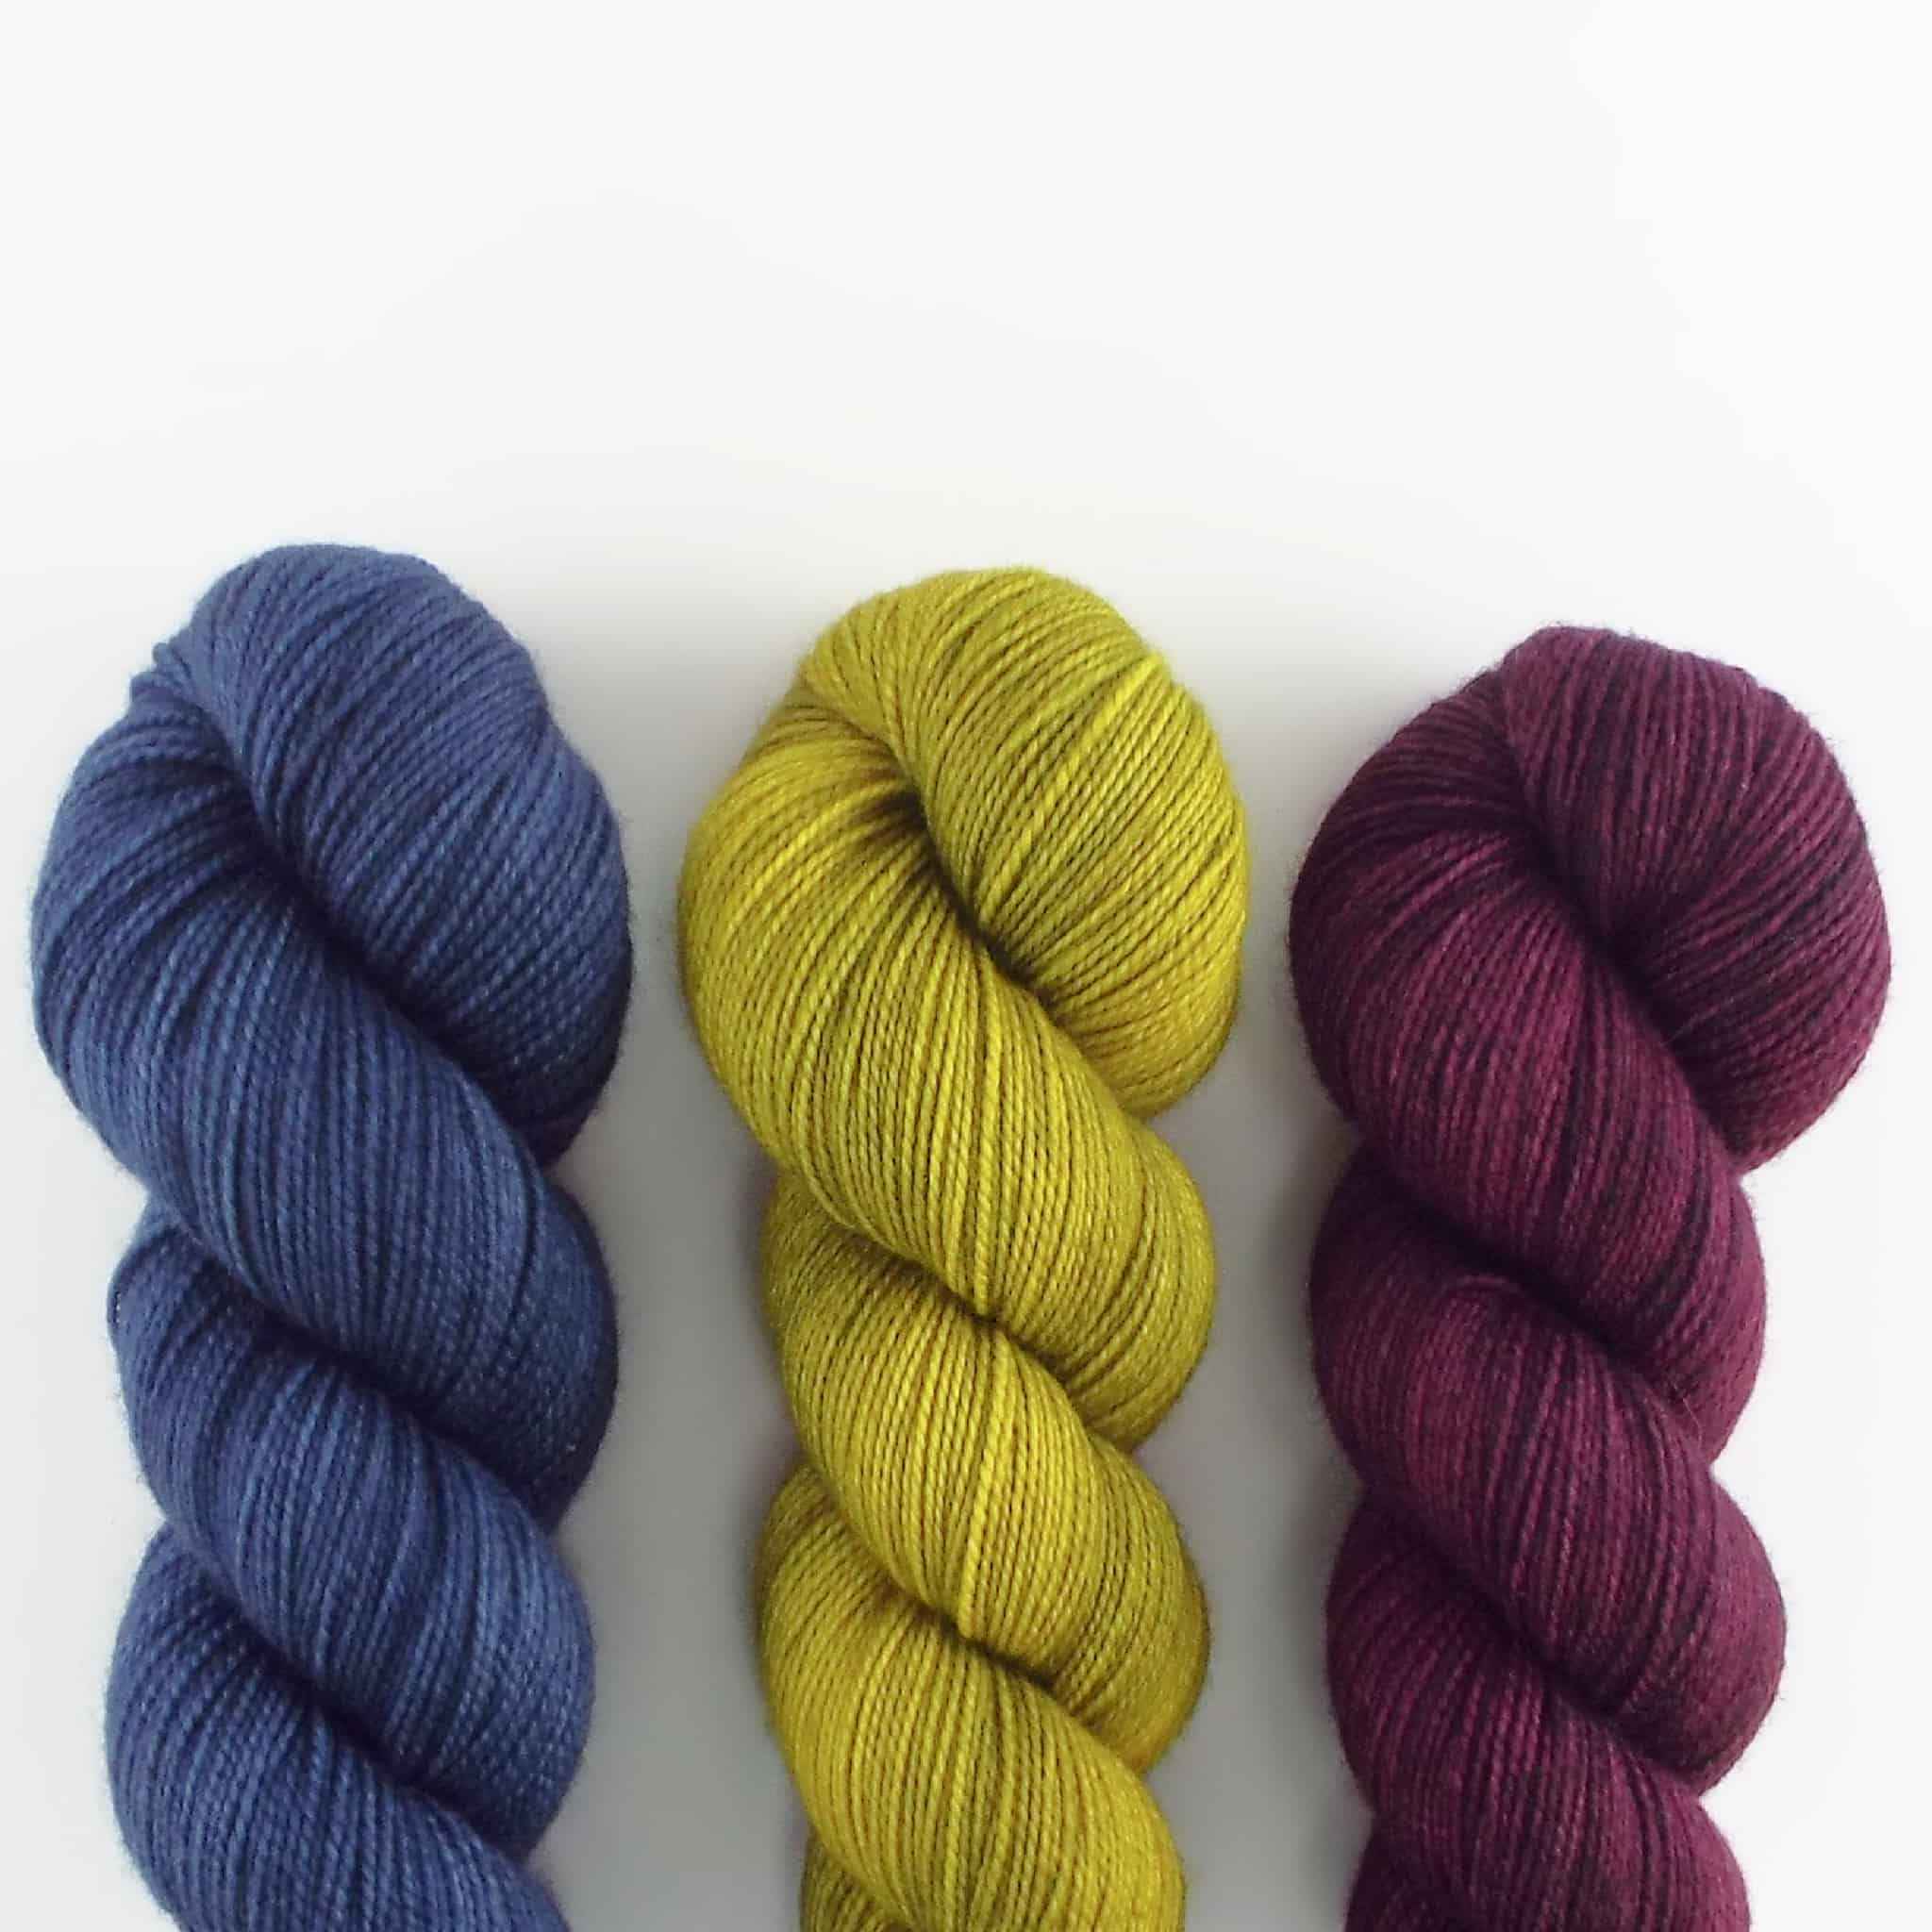 Blue, chartreuse and purple yarn.